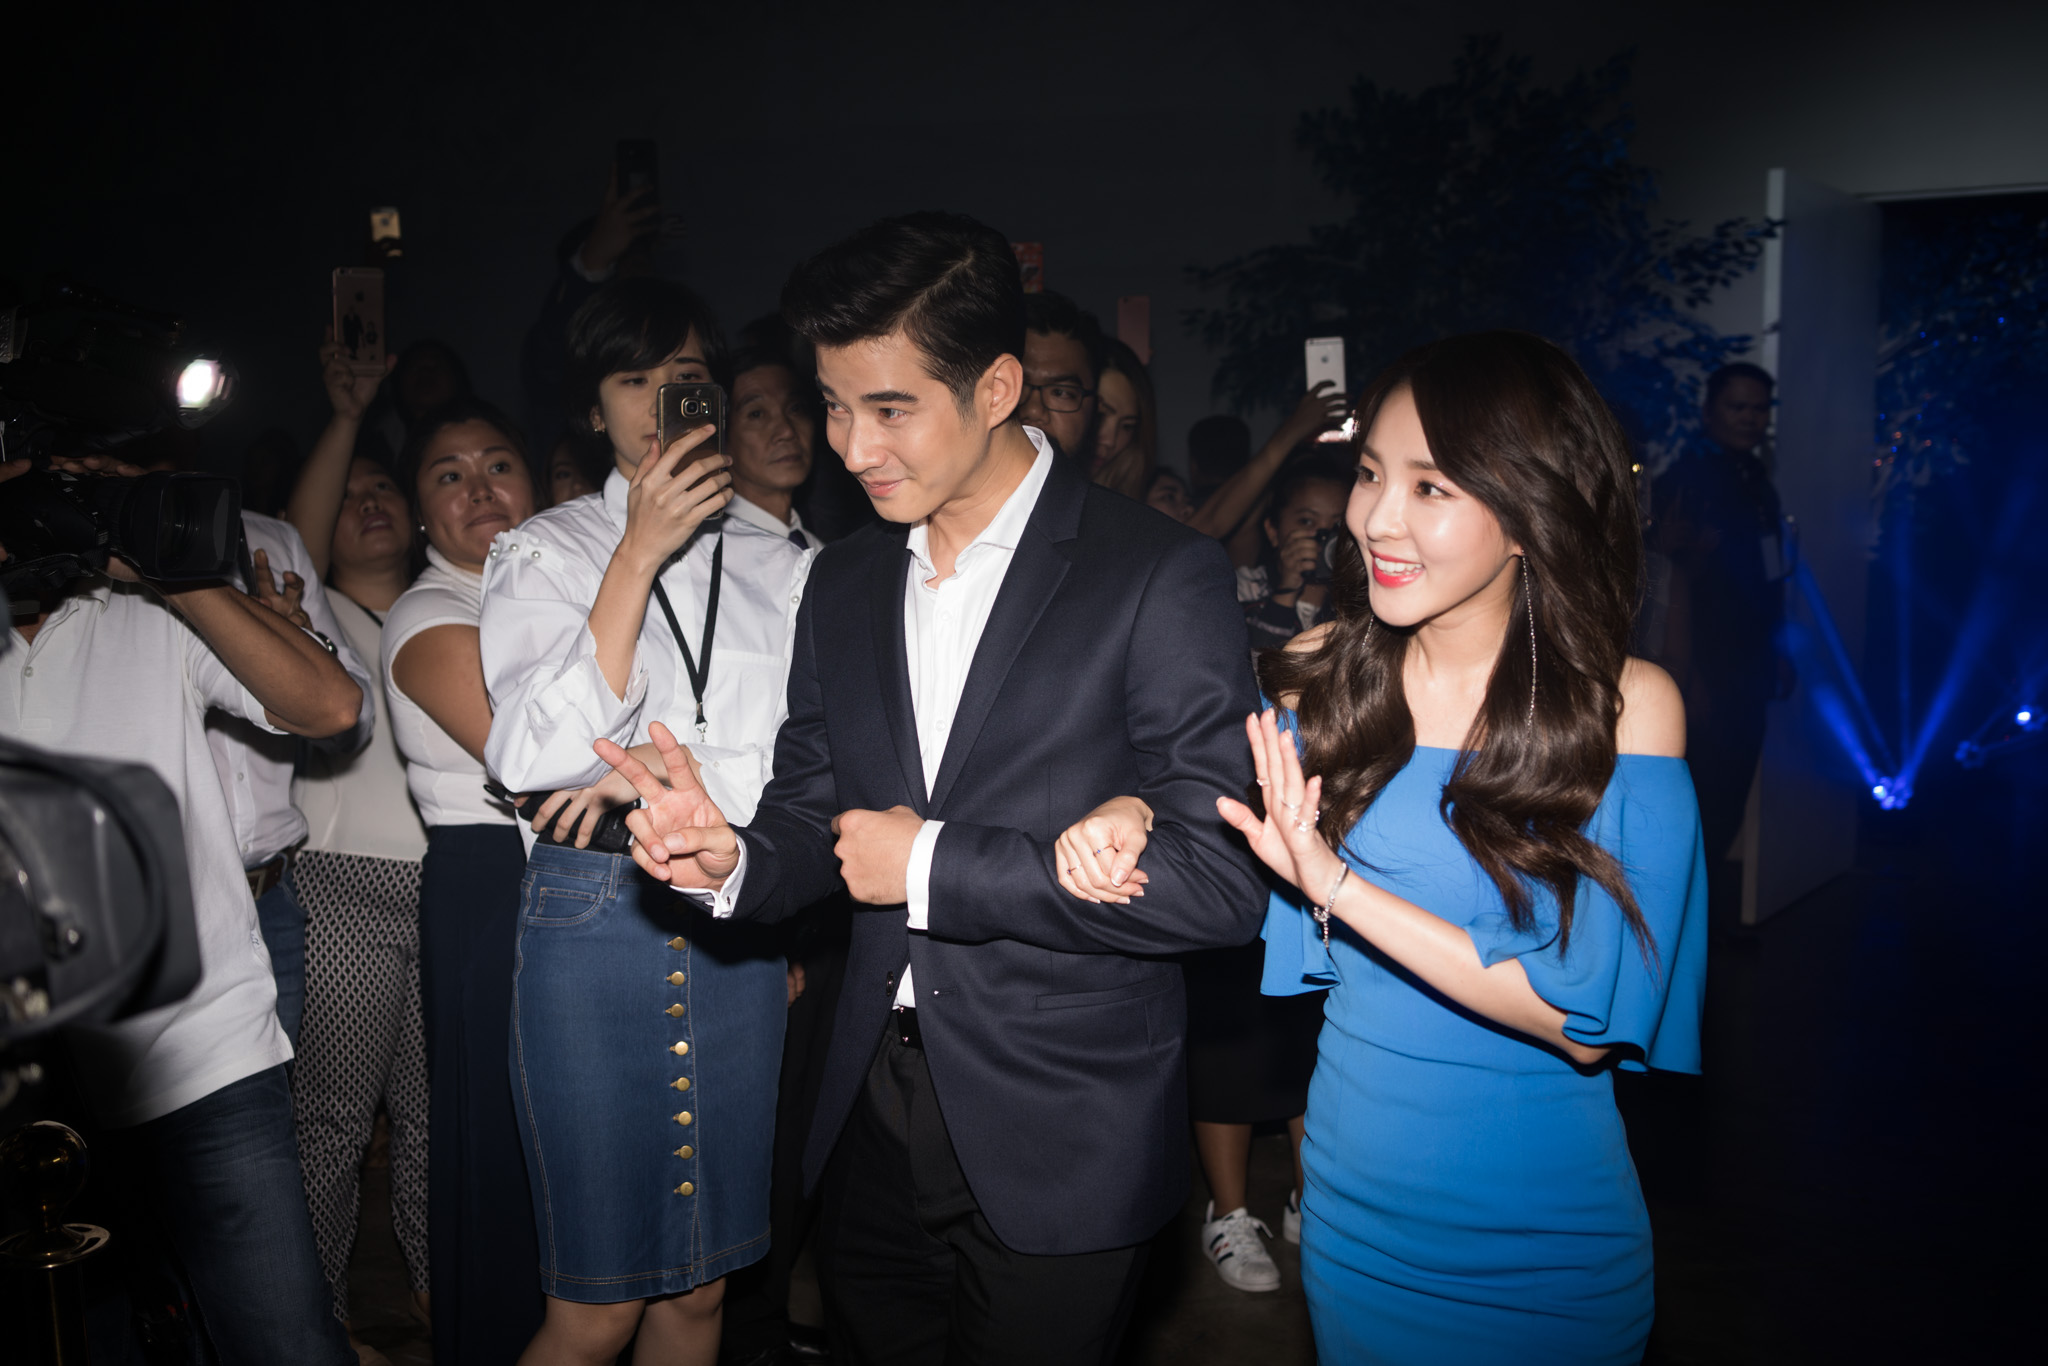 Mario and Sandara walk the red carpet at the launch. The two said they are open to doing more projects in the Philippines like TV shows and movies.